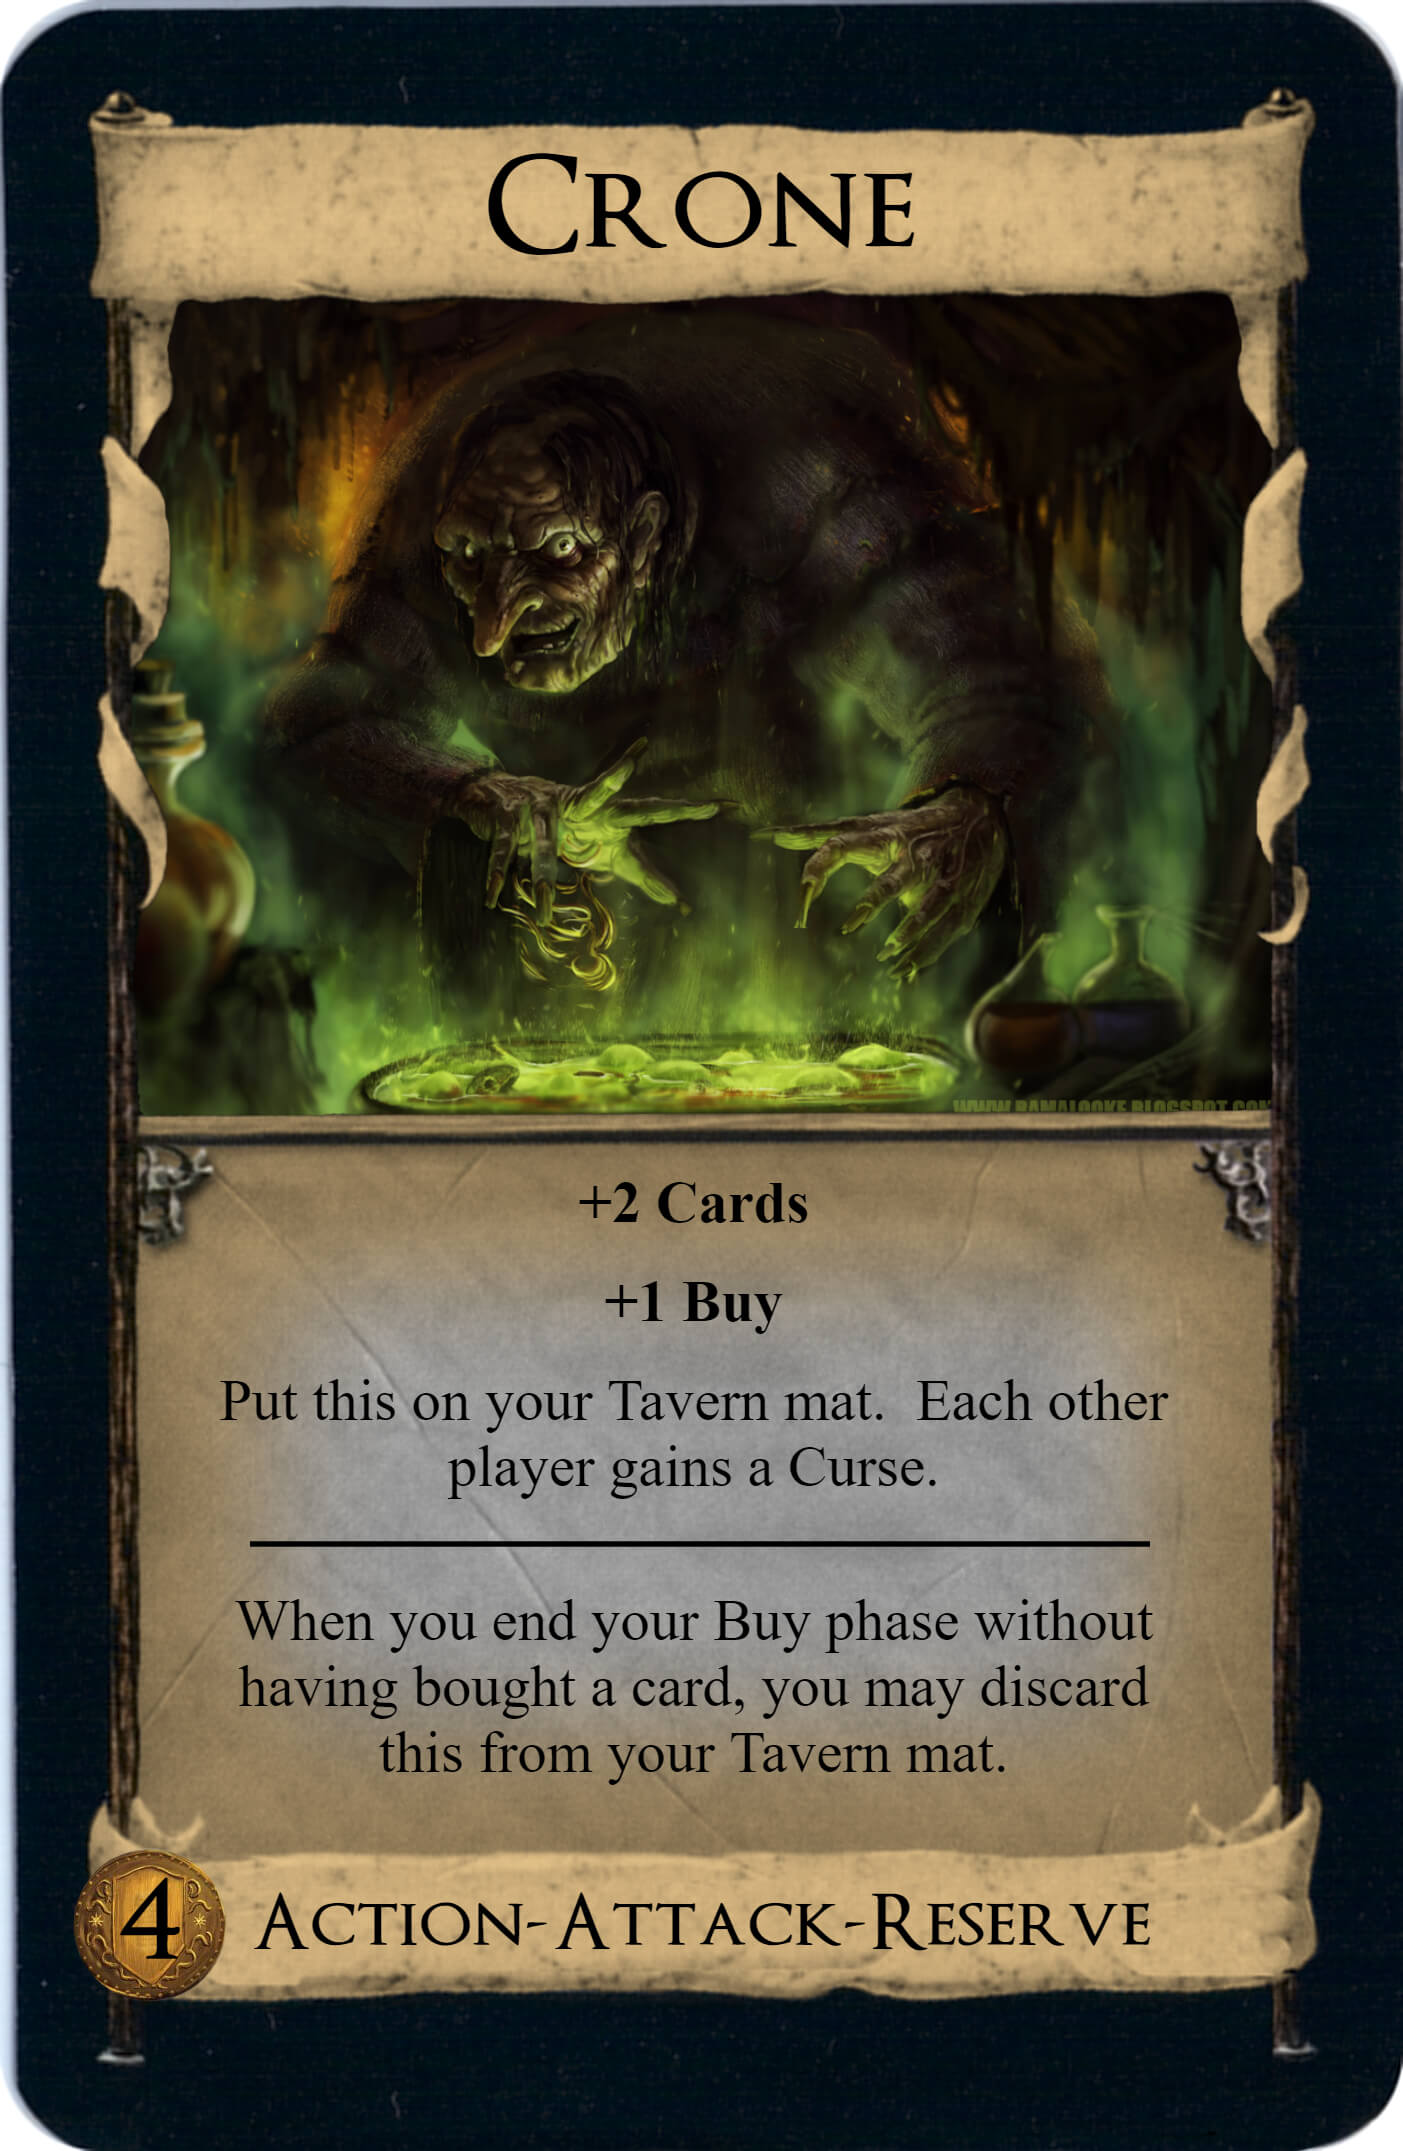 Dominion Card Image Generator Pertaining To Dominion Card Template